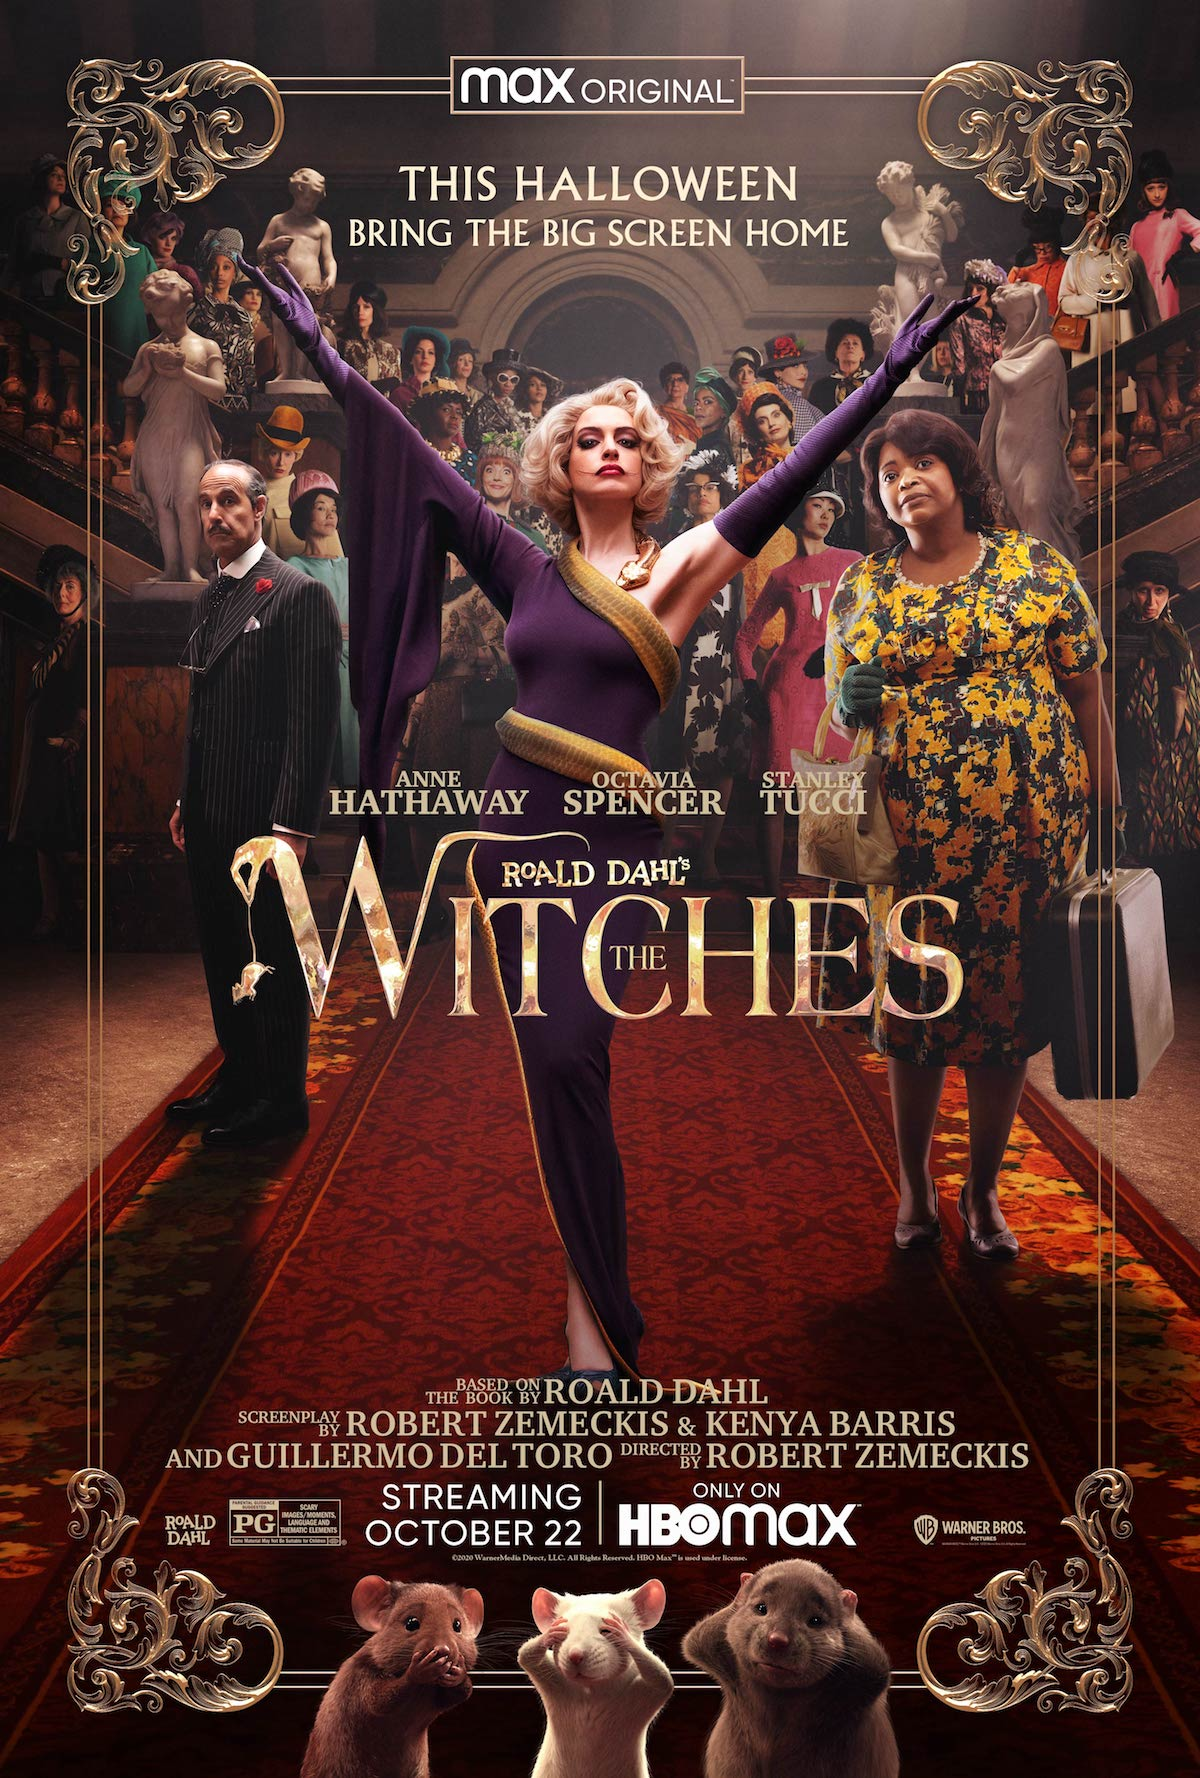 The Witches Remake Gets Freaky New Teaser Trailer a Week Before Release